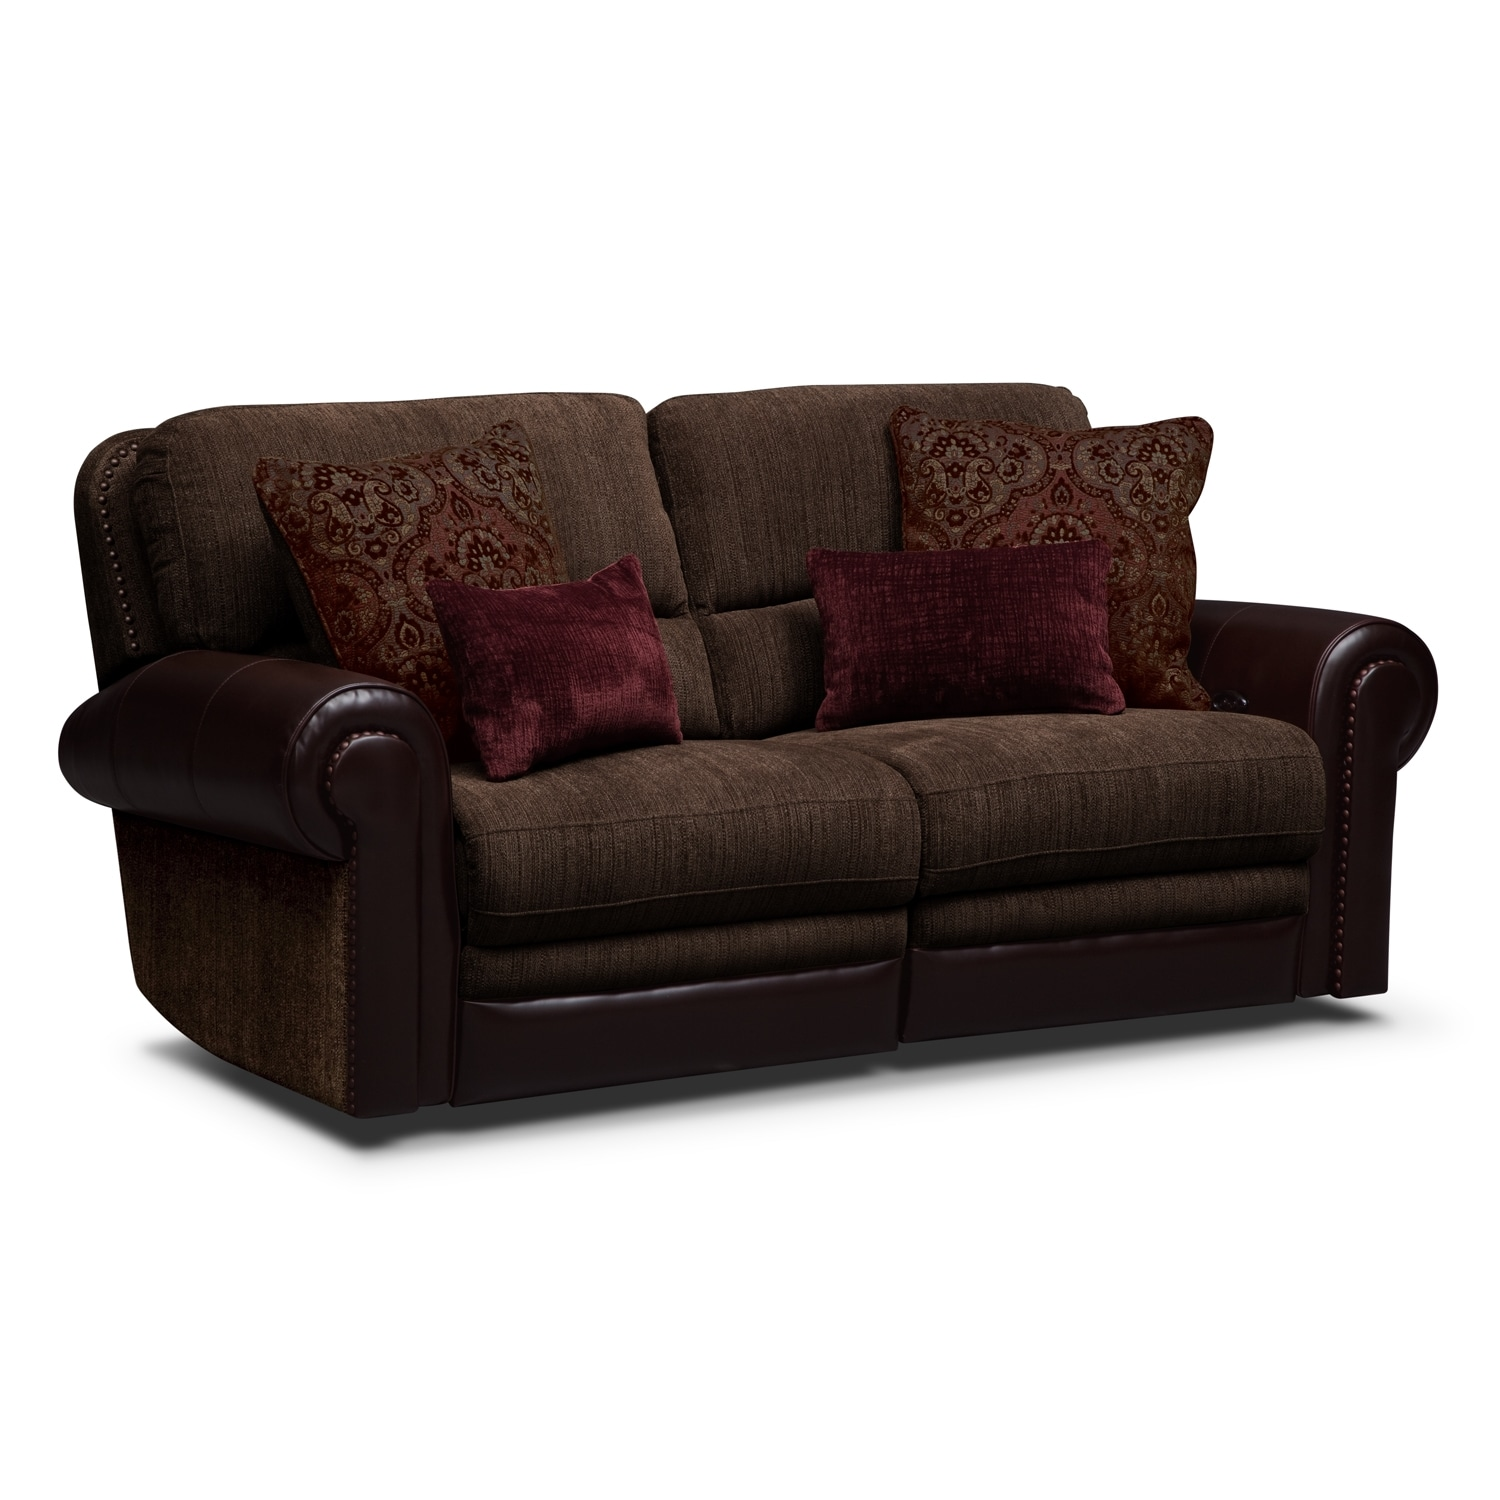 Prescott upholstery 2 pc power reclining sofa value for Living room 2 sofas